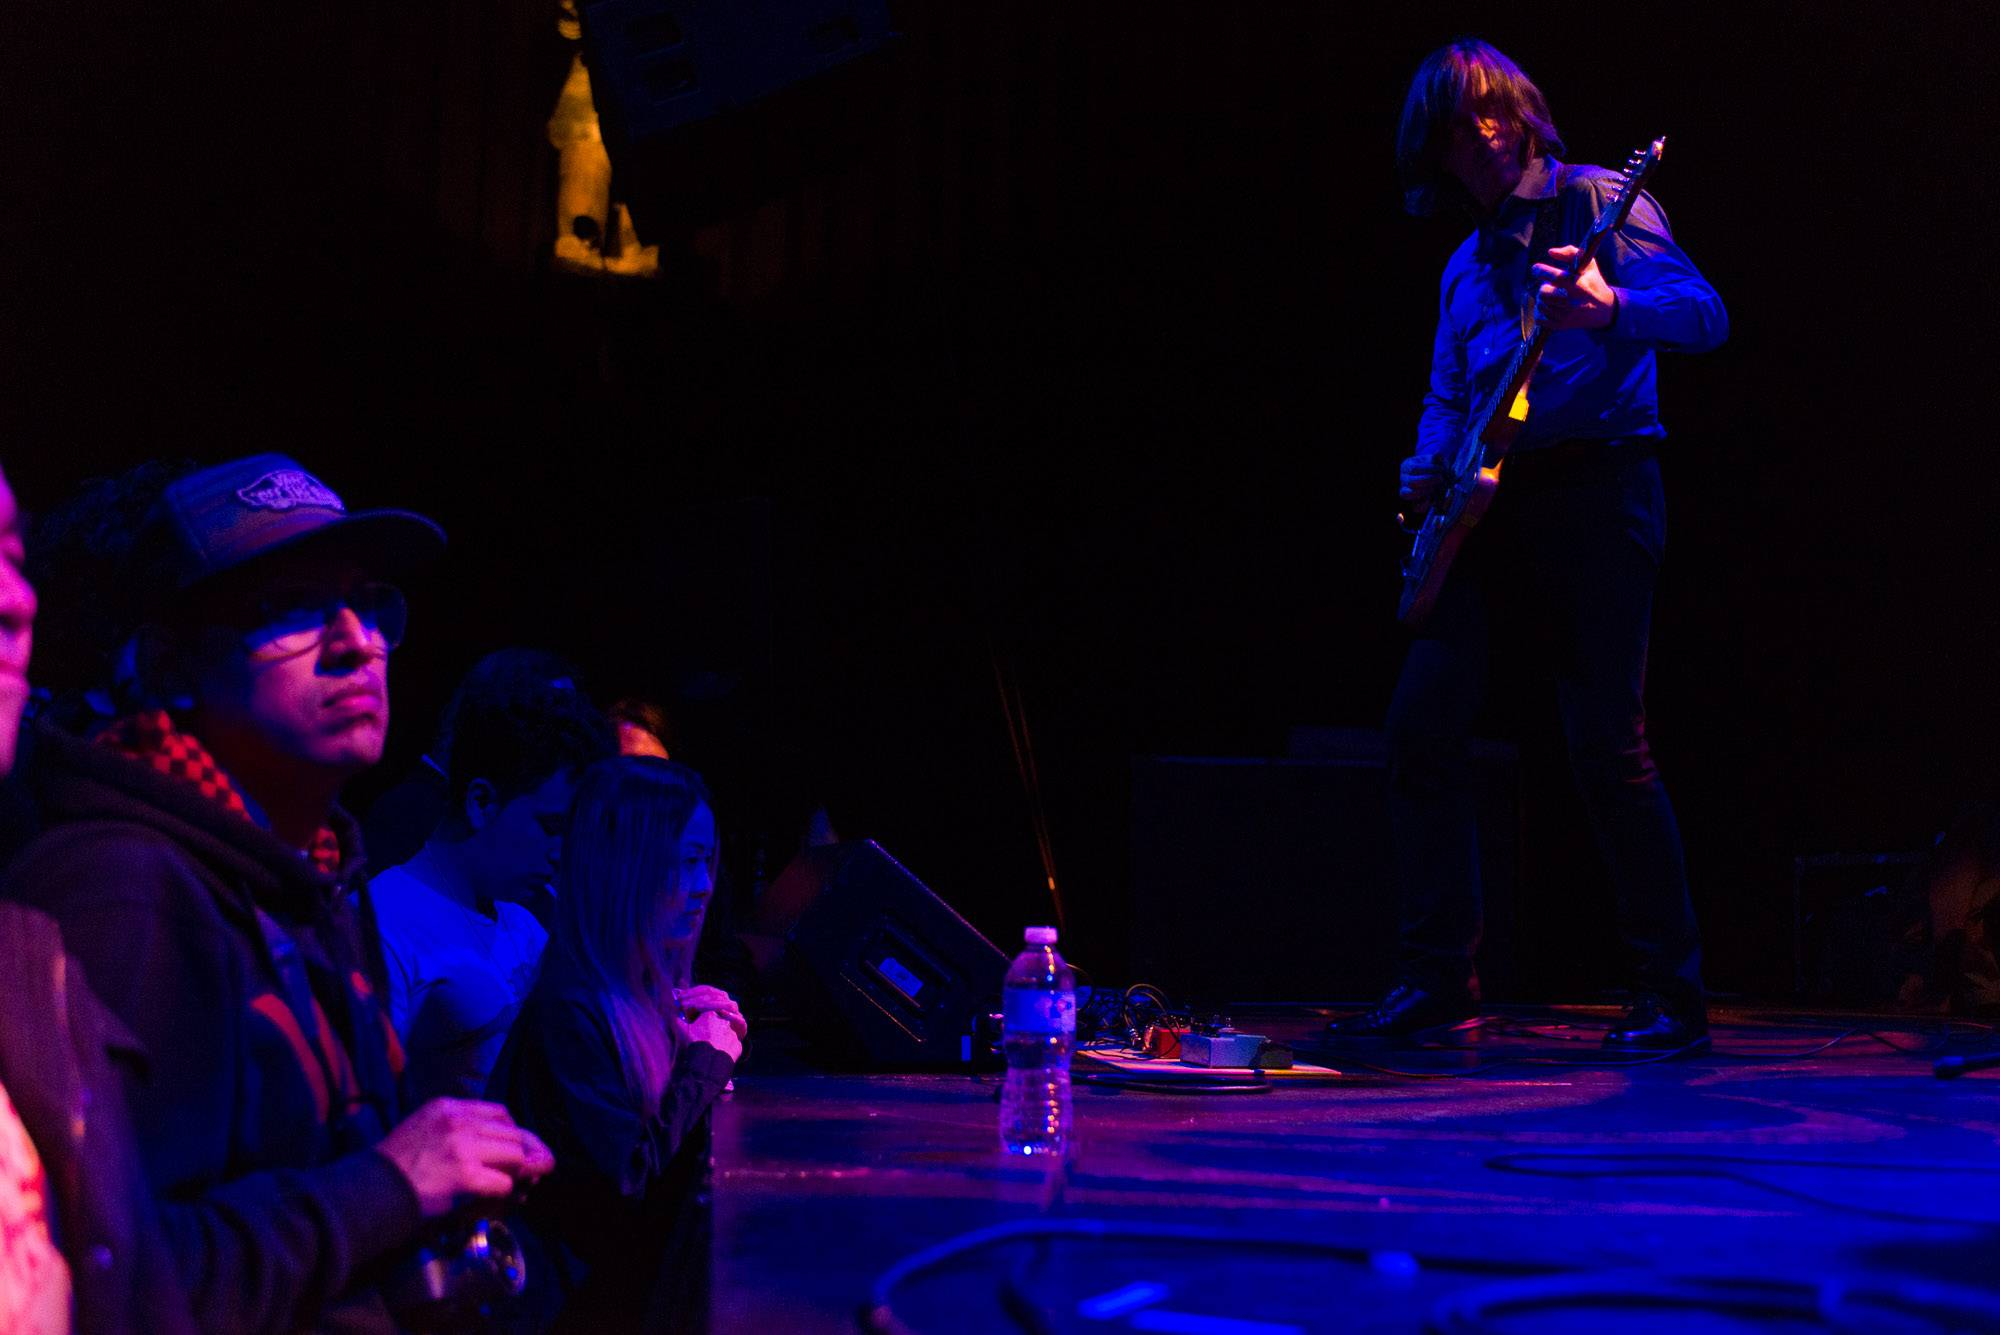 Thurston Moore at the Imperial Nightclub, Vancouver, May 8 2017. Jessica Vandergulik photo.